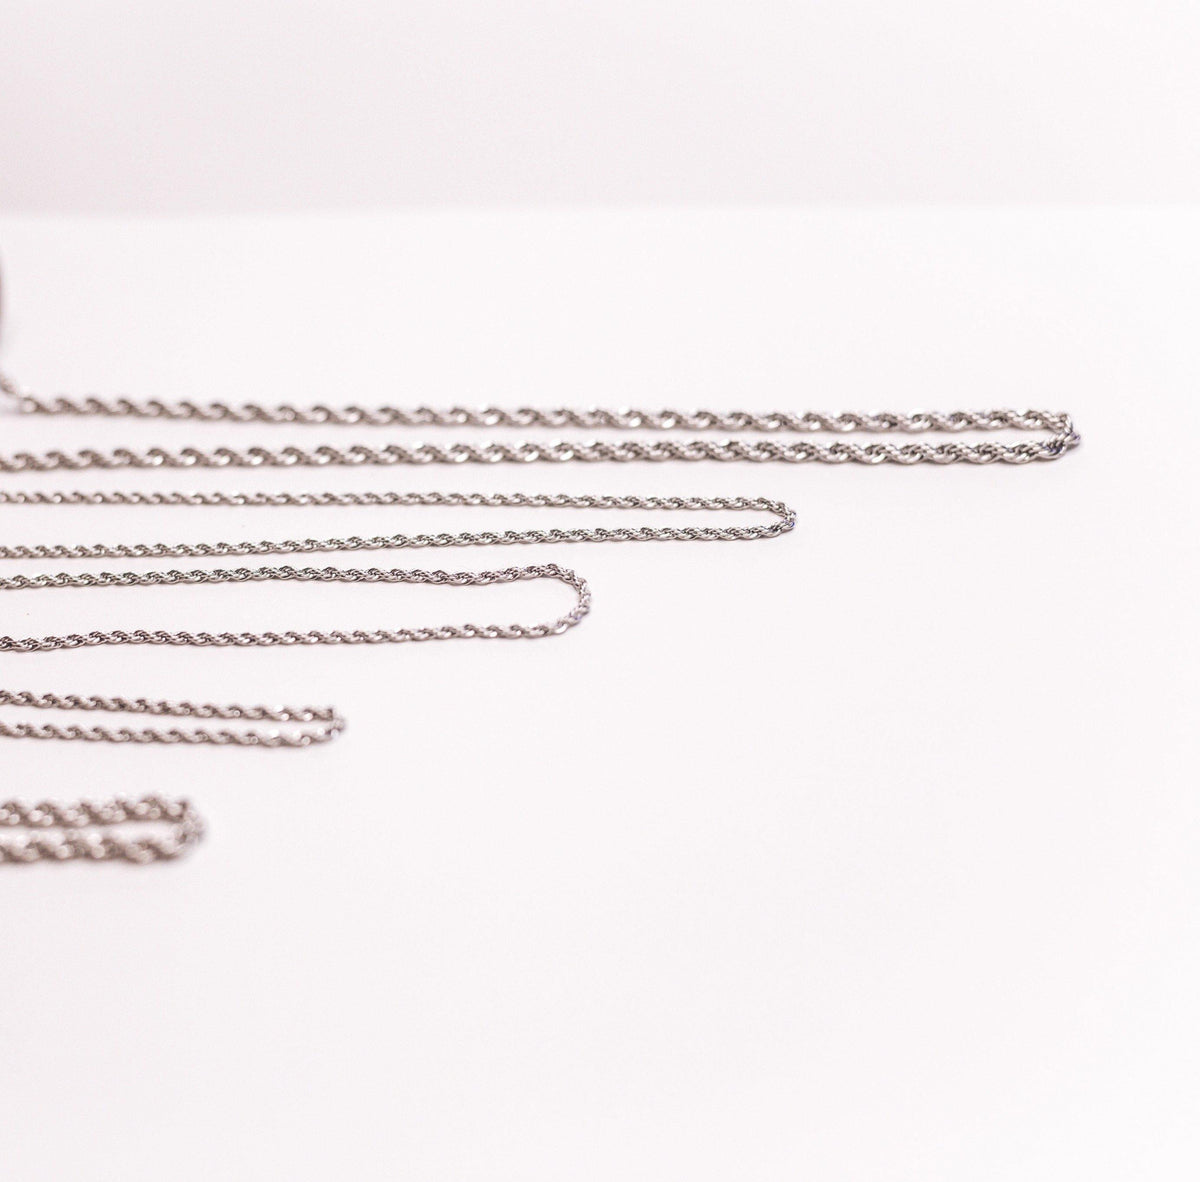 top selling stainless steel necklaces